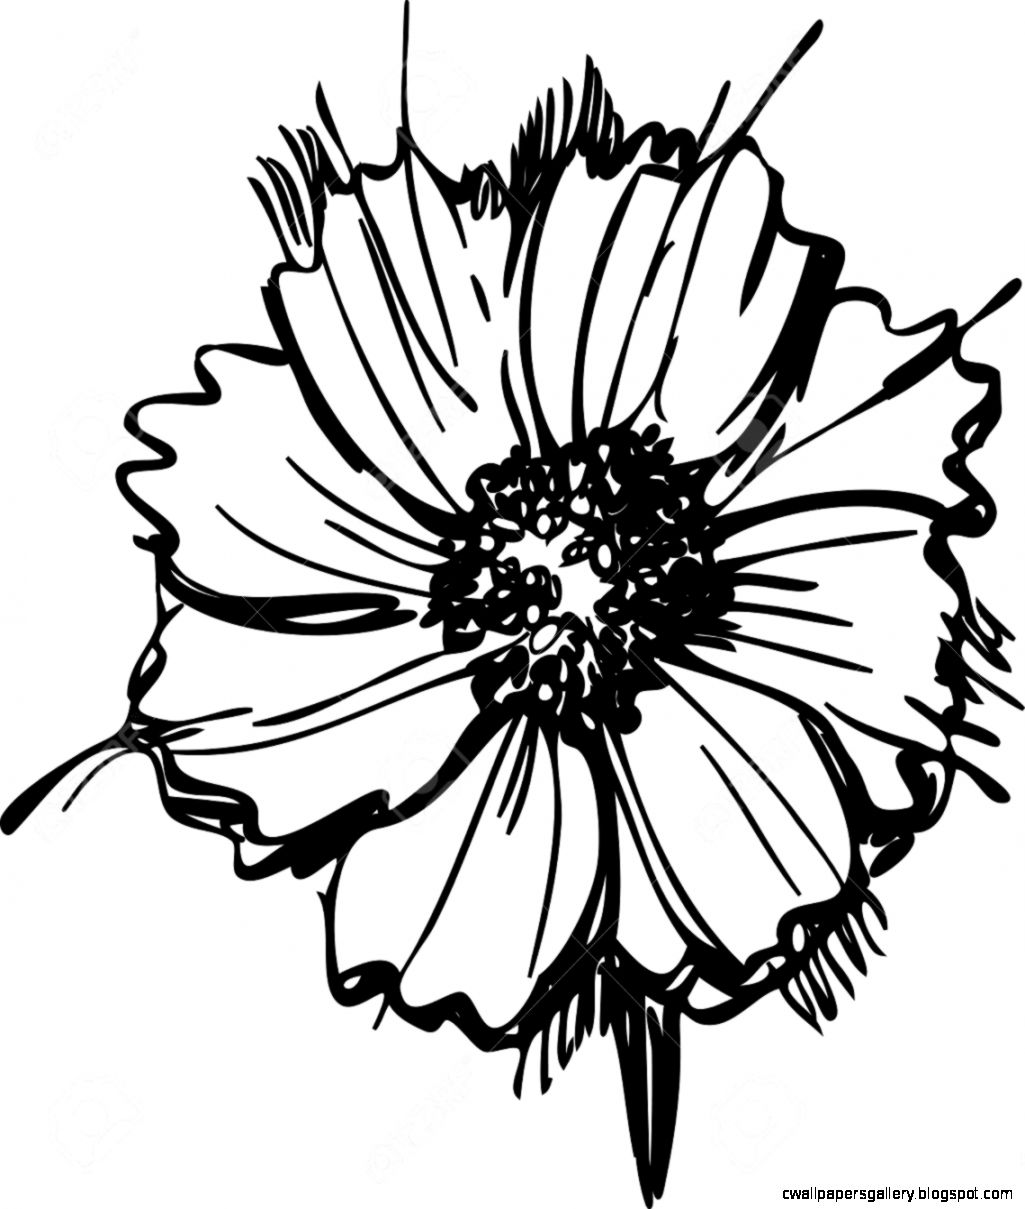 Sketch Wild Flower Resembling A Daisy Royalty Free Cliparts